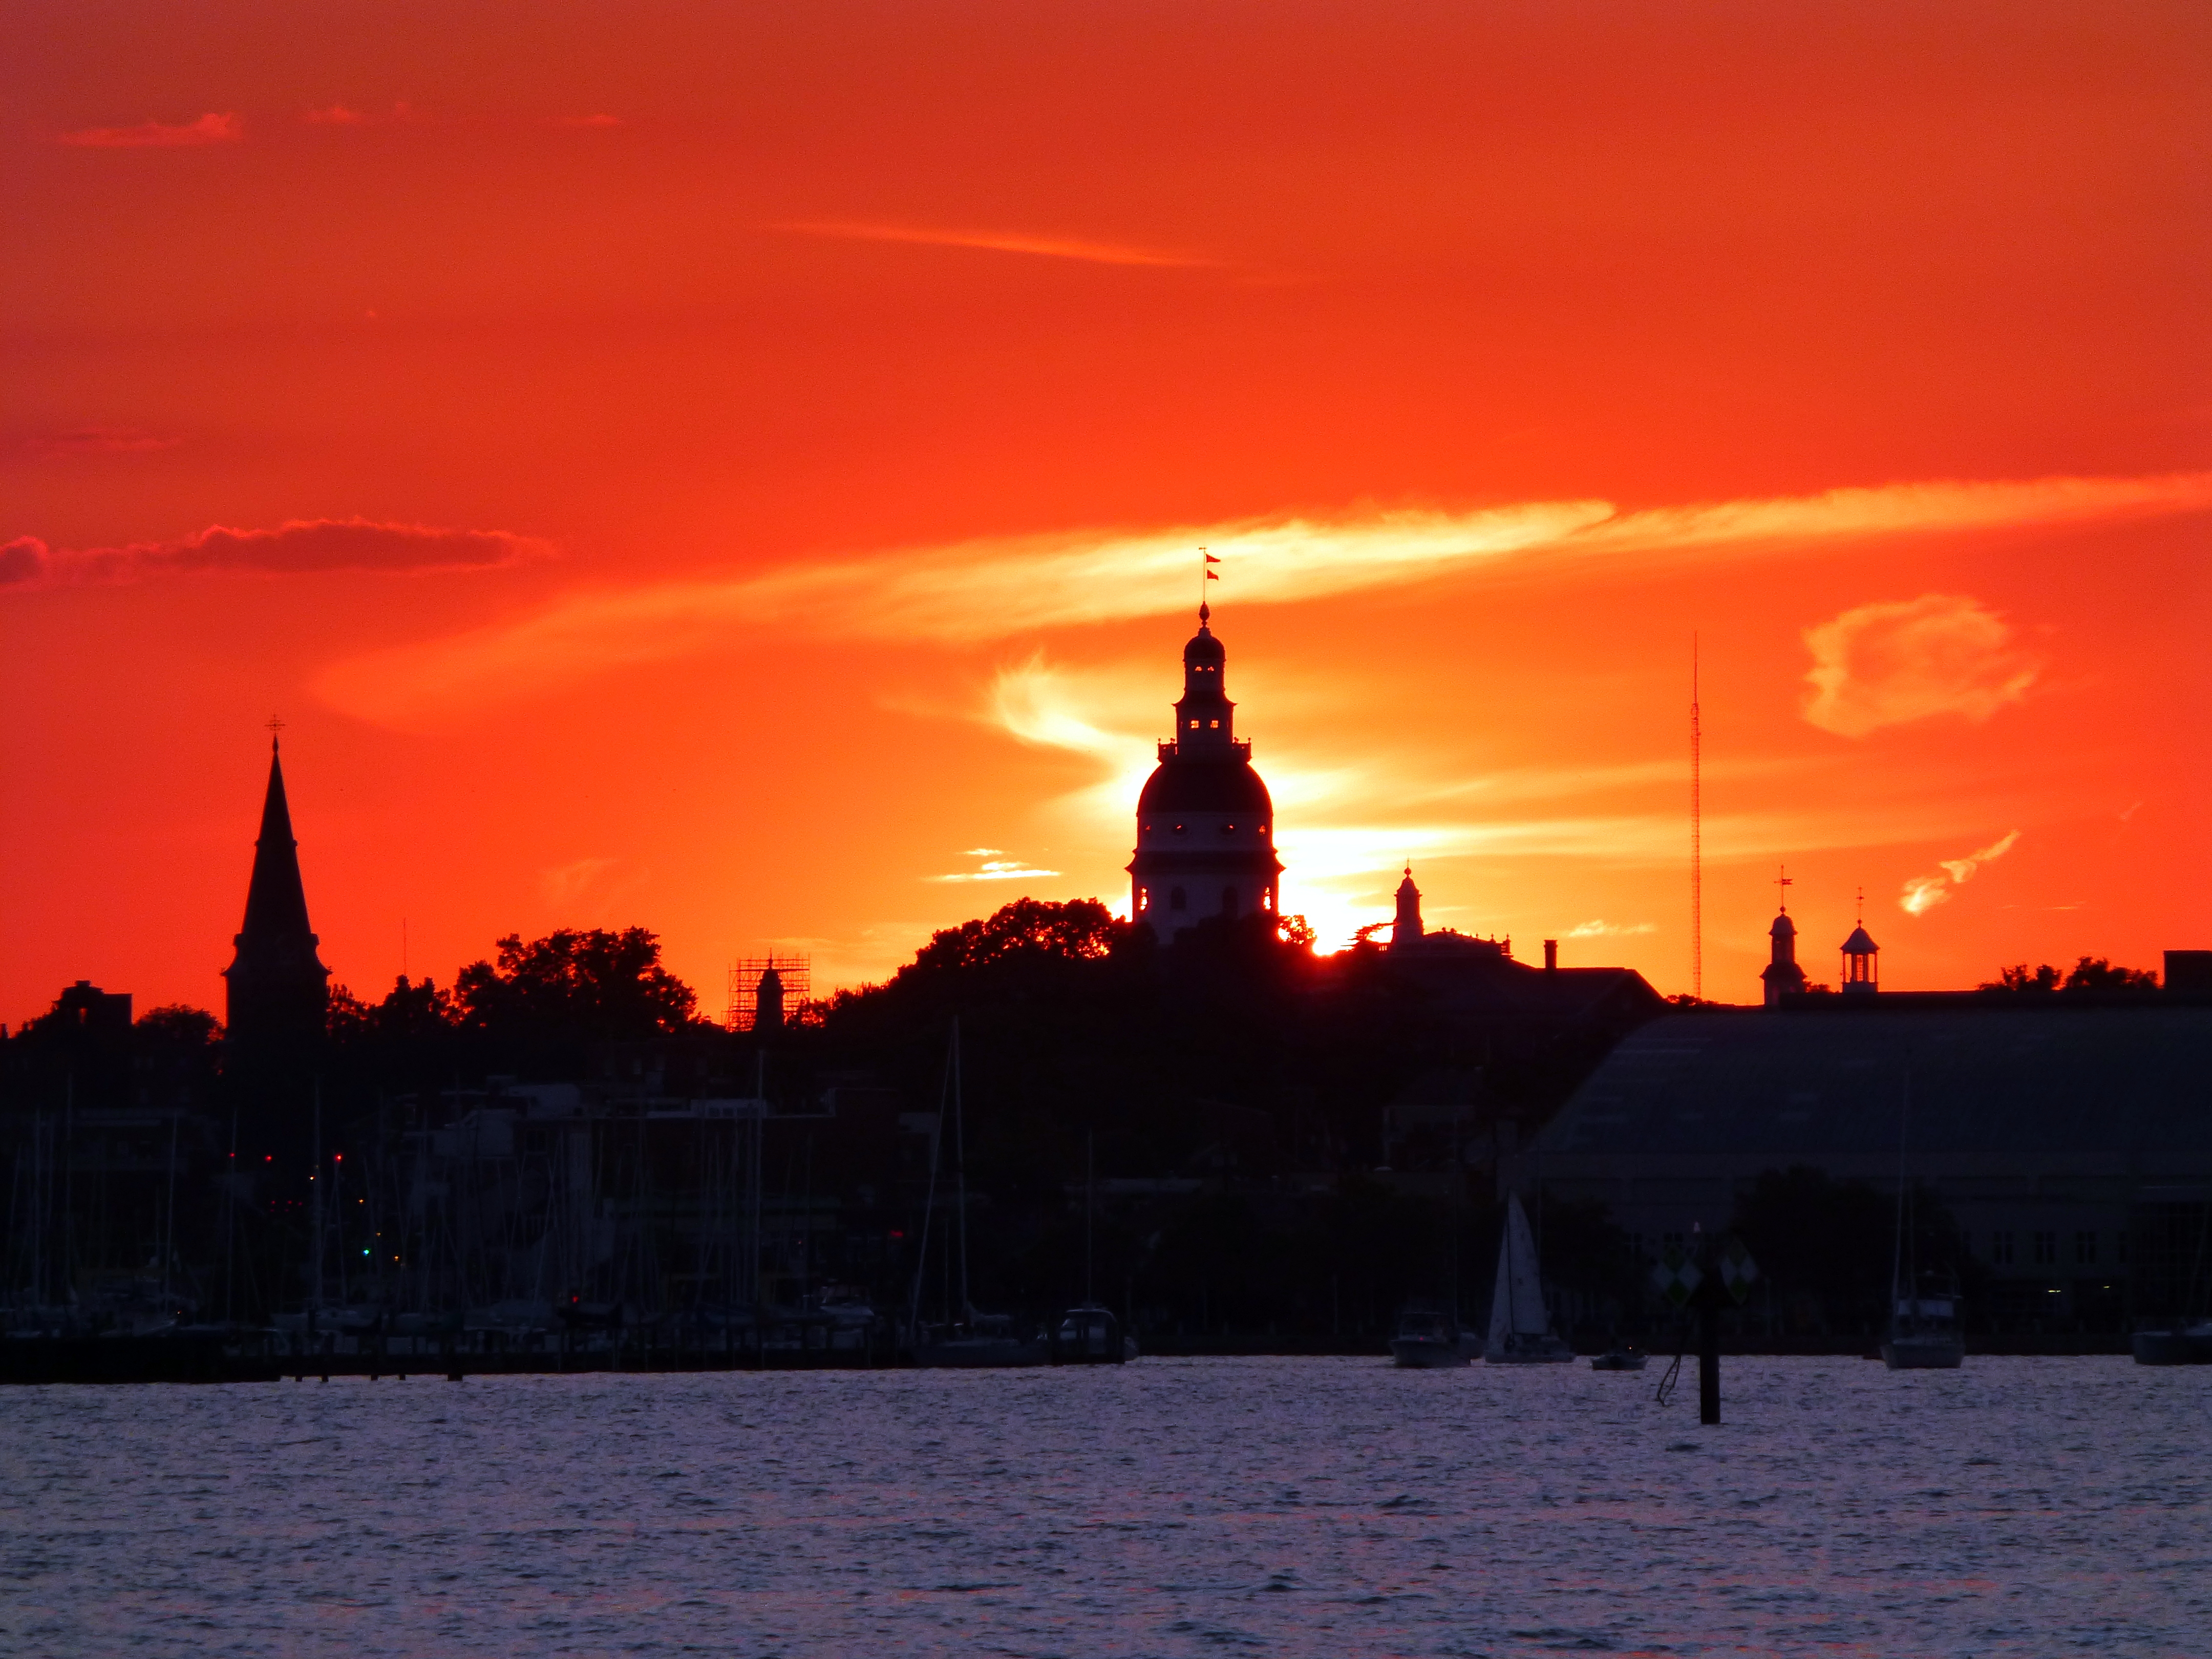 Sunset over Annapolis